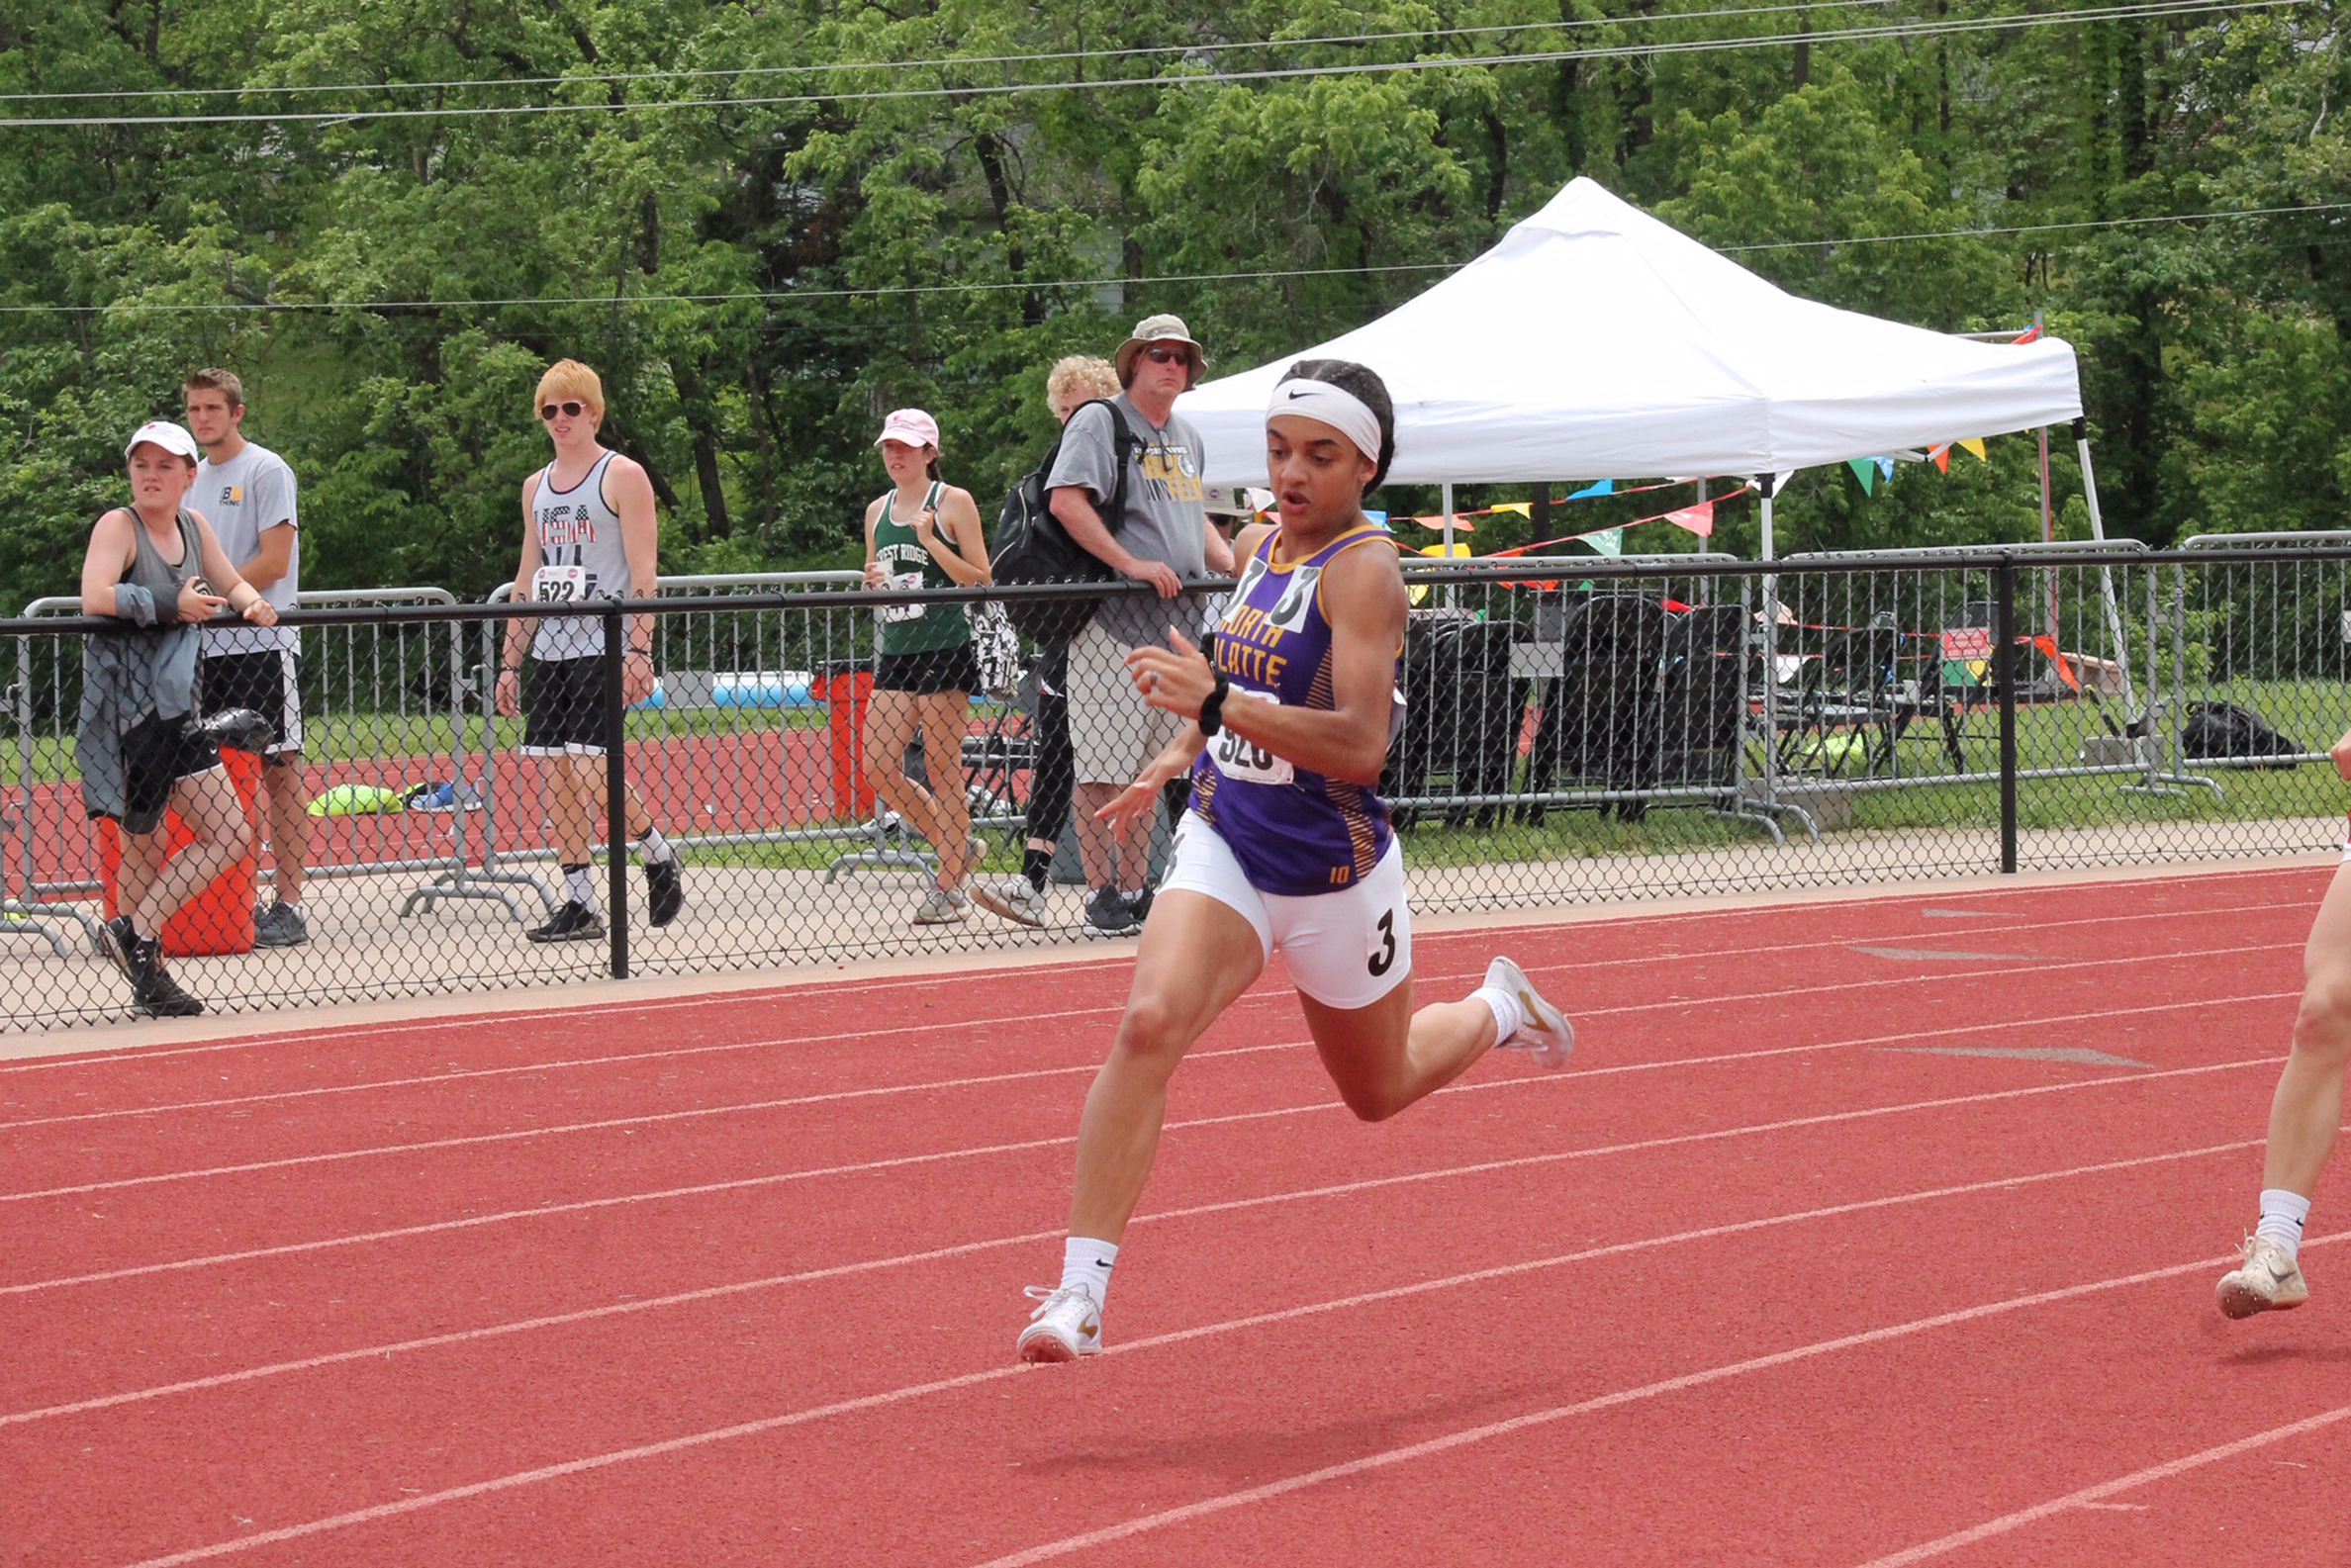 BREANNA CHEADLE/Special to the Citizen North Platte's Maddie O'Neill became only the second girl in the school history to win an individual race at the MSHSAA State Track and Field Championships when she won the 400-meter dash on Saturday, May 18.